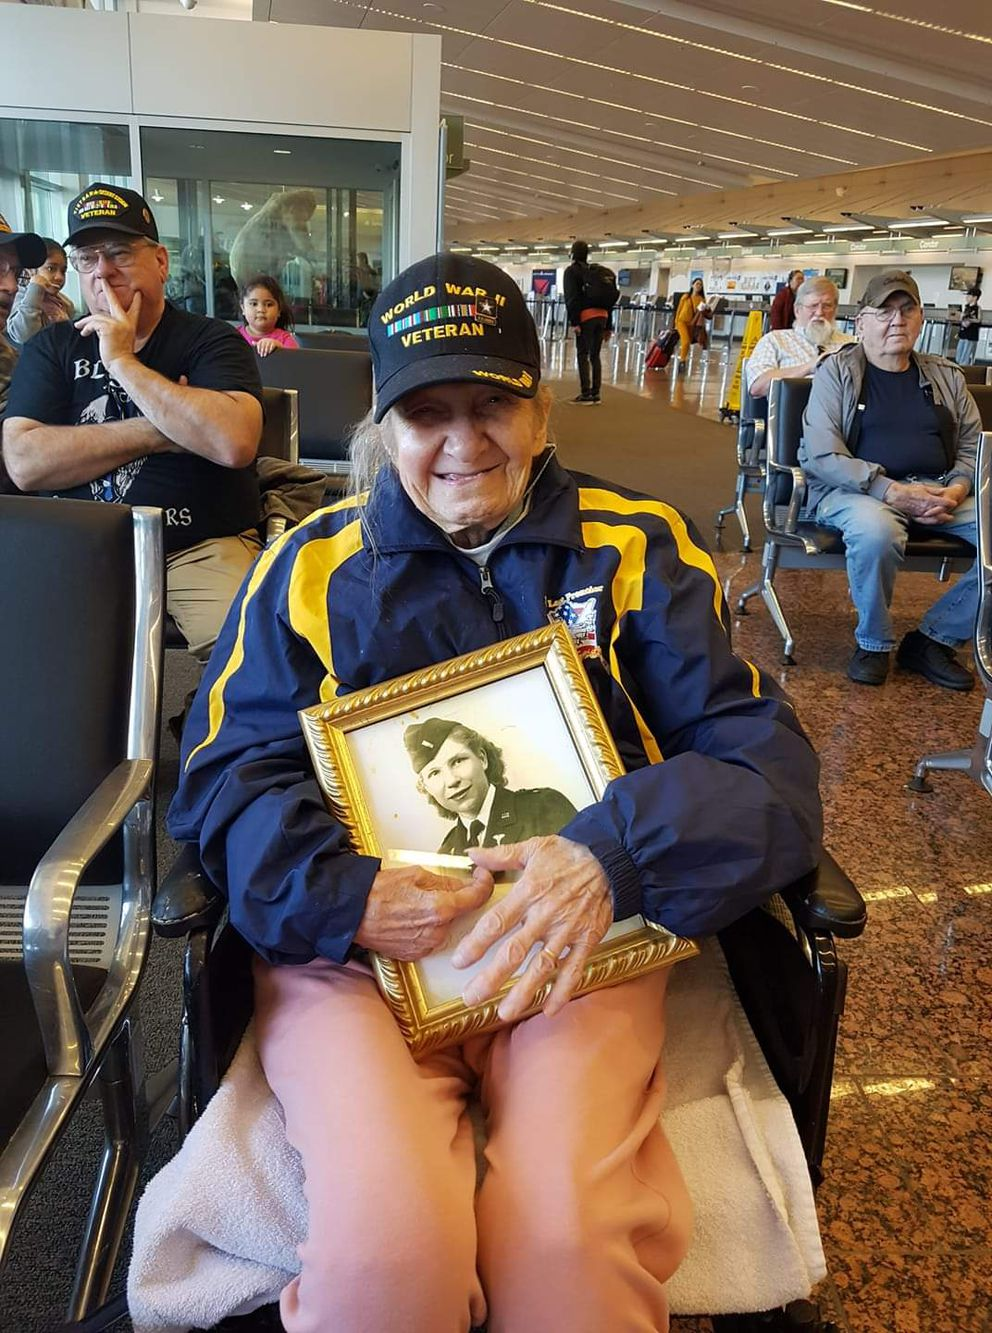 Eagle River's Charlotte Schwid poses for a photo while attending an Honor Flight homecoming event in May 2019. (Photo by Sharon White / Courtesy)